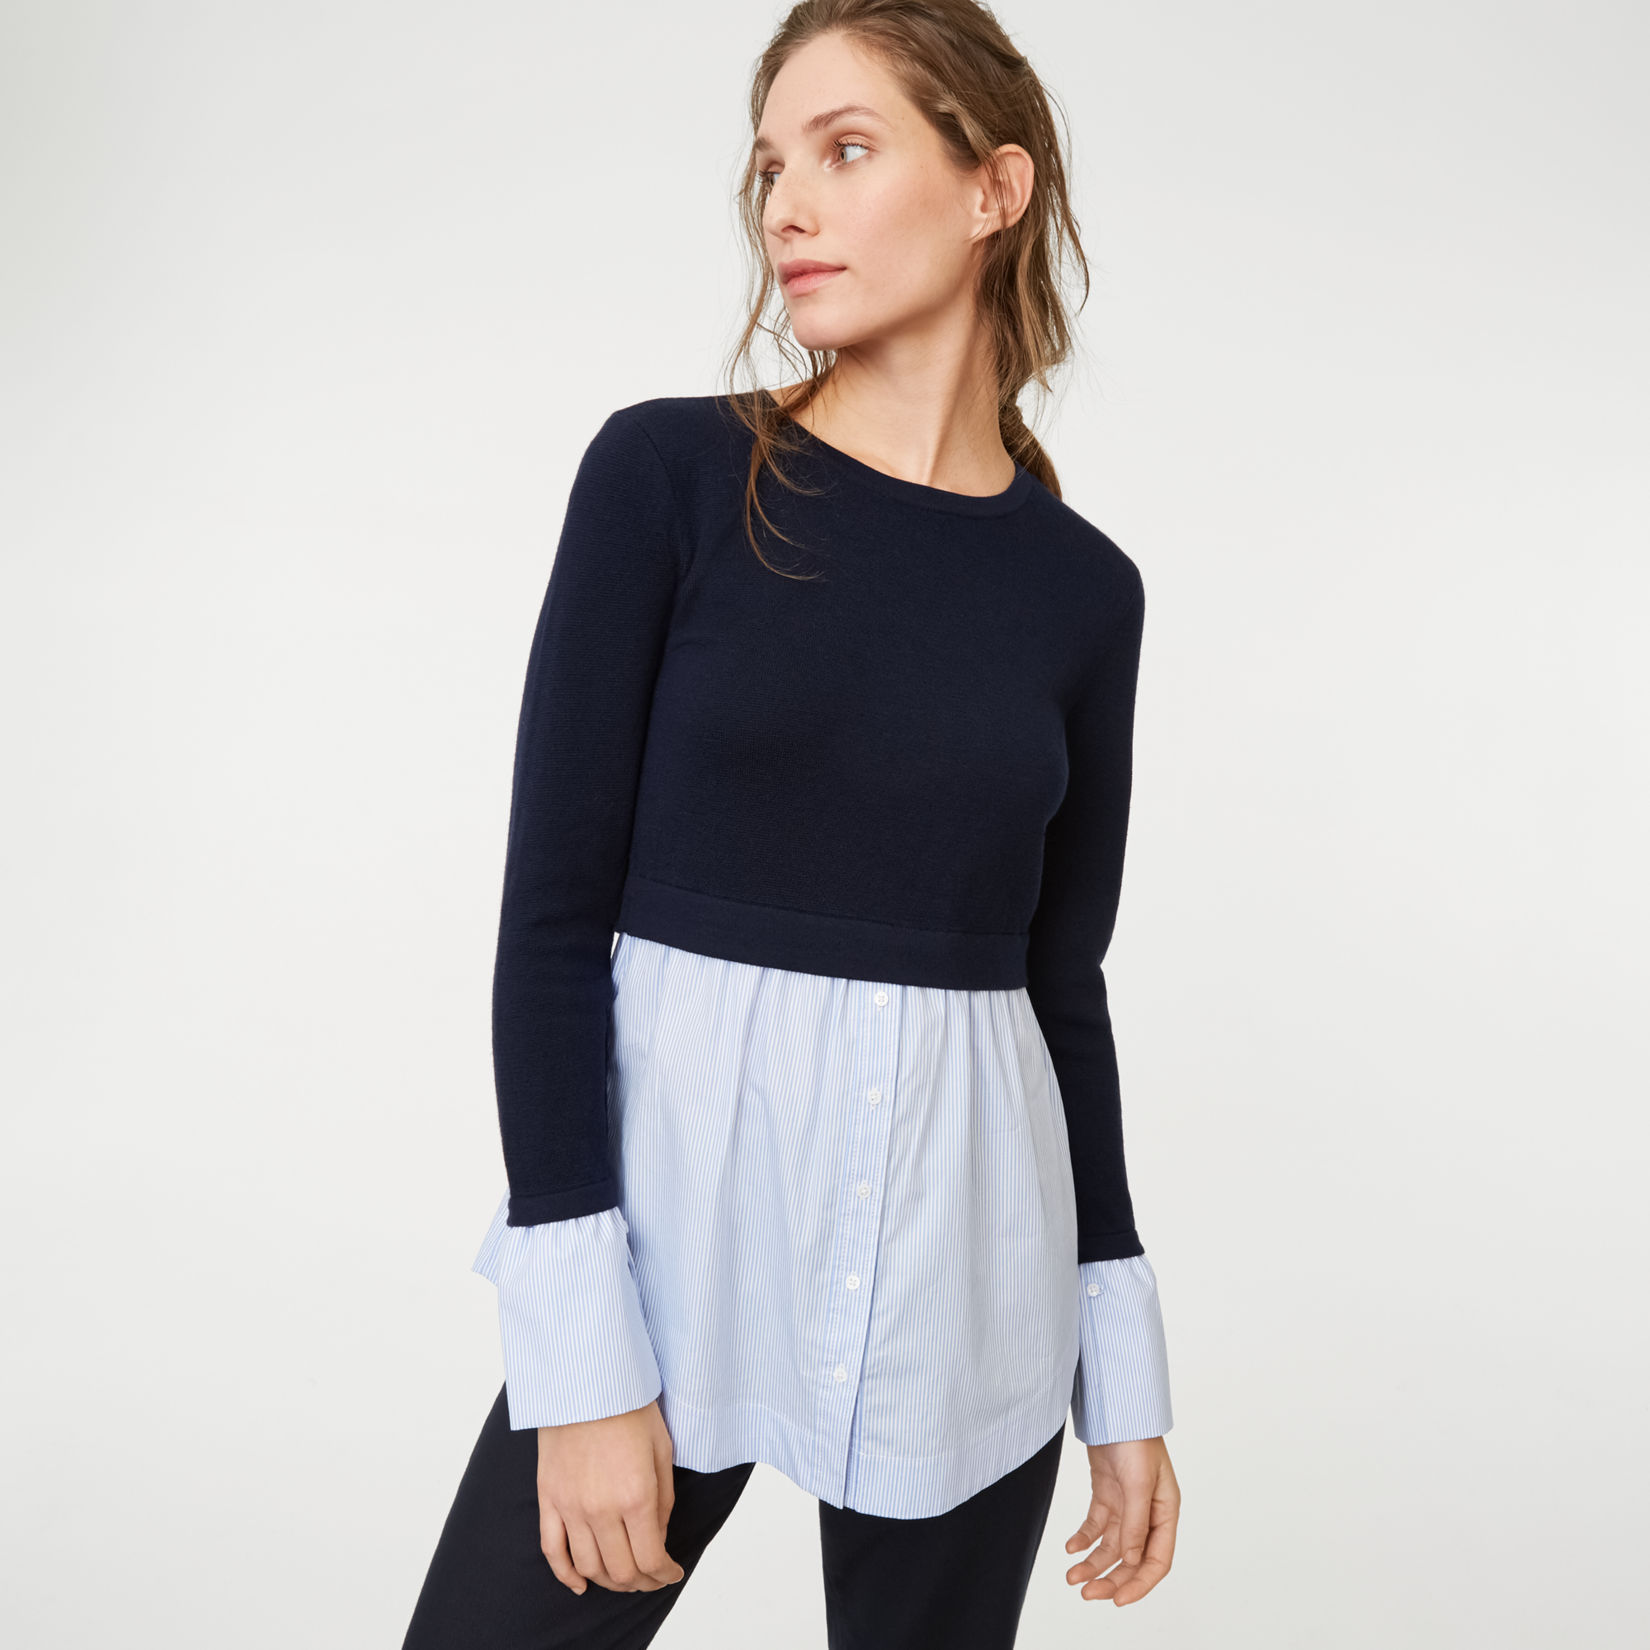 Women | Sweaters - Cardigans, Cashmere, Turtlenecks and More ...